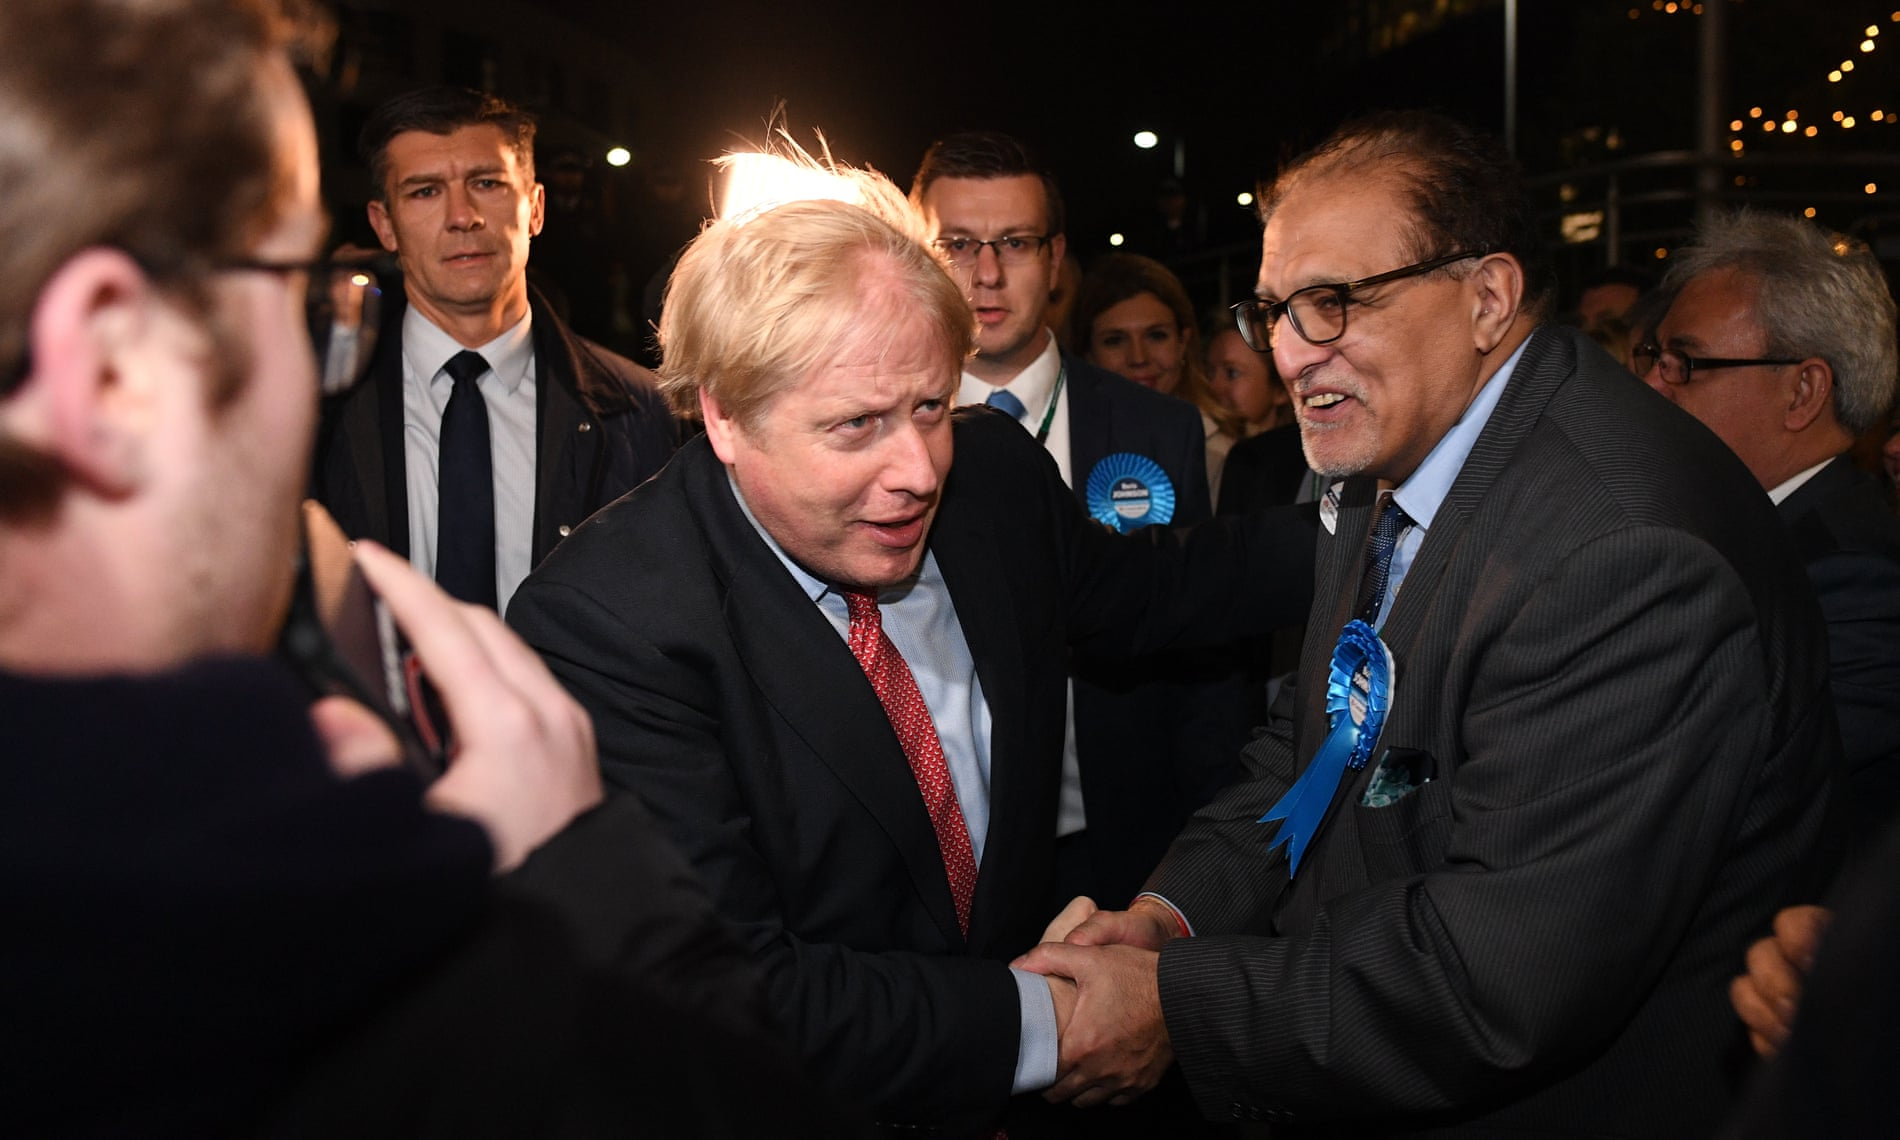 Boris Johnson leads Tories to historic general election win